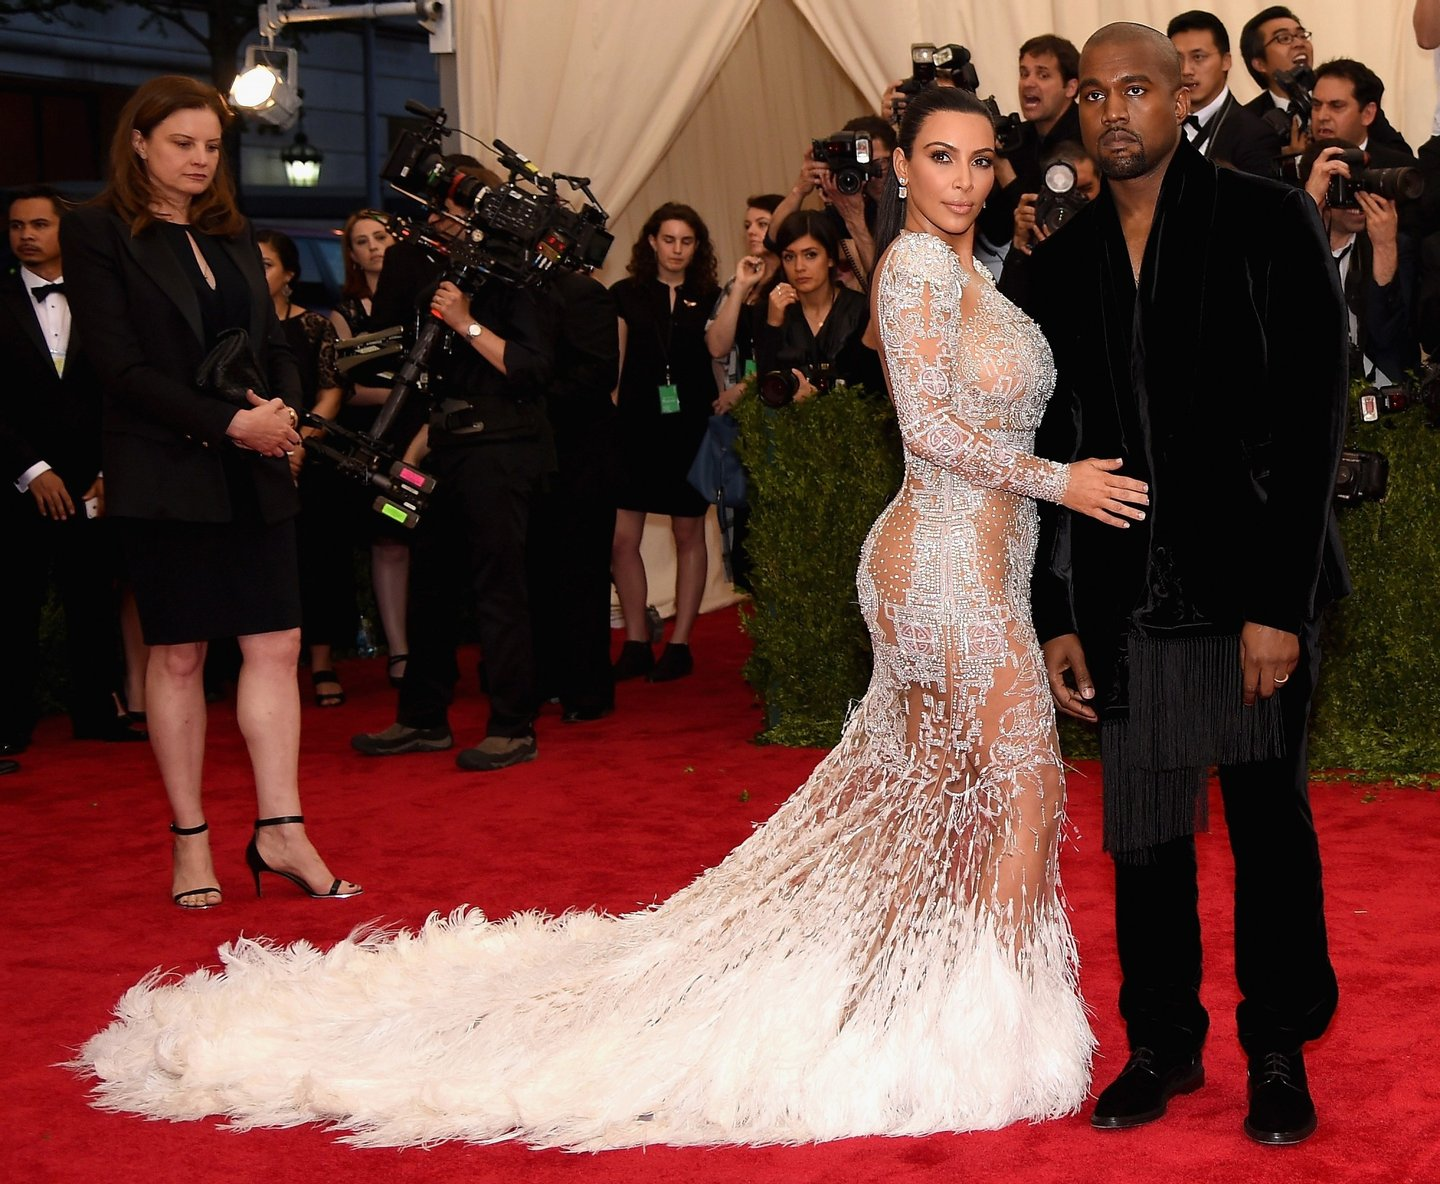 """NEW YORK, NY - MAY 04: Kim Kardashian West (L) and Kanye West attend the """"China: Through The Looking Glass"""" Costume Institute Benefit Gala at the Metropolitan Museum of Art on May 4, 2015 in New York City. (Photo by Dimitrios Kambouris/Getty Images) *** Local Caption *** Kim Kardashian West; Kanye West"""